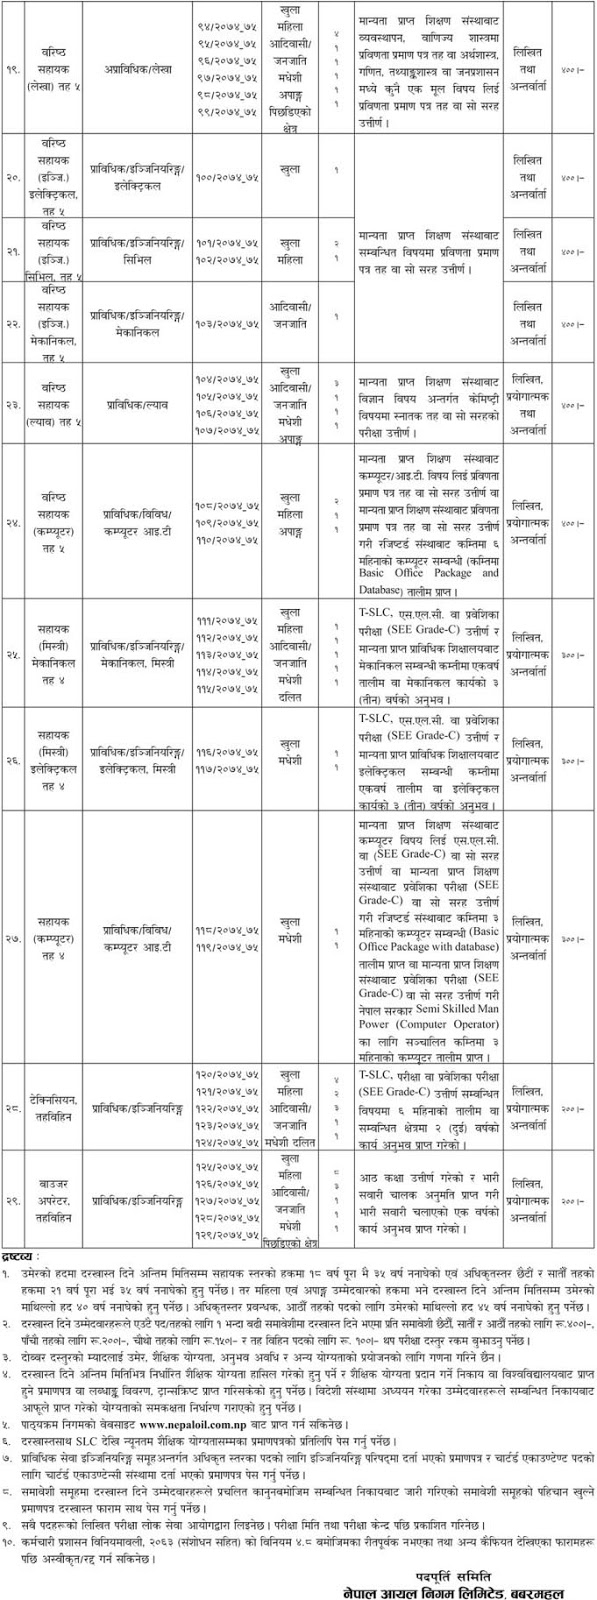 Nepal Oil Corporation (NOC) Job Vacancy (with Form and